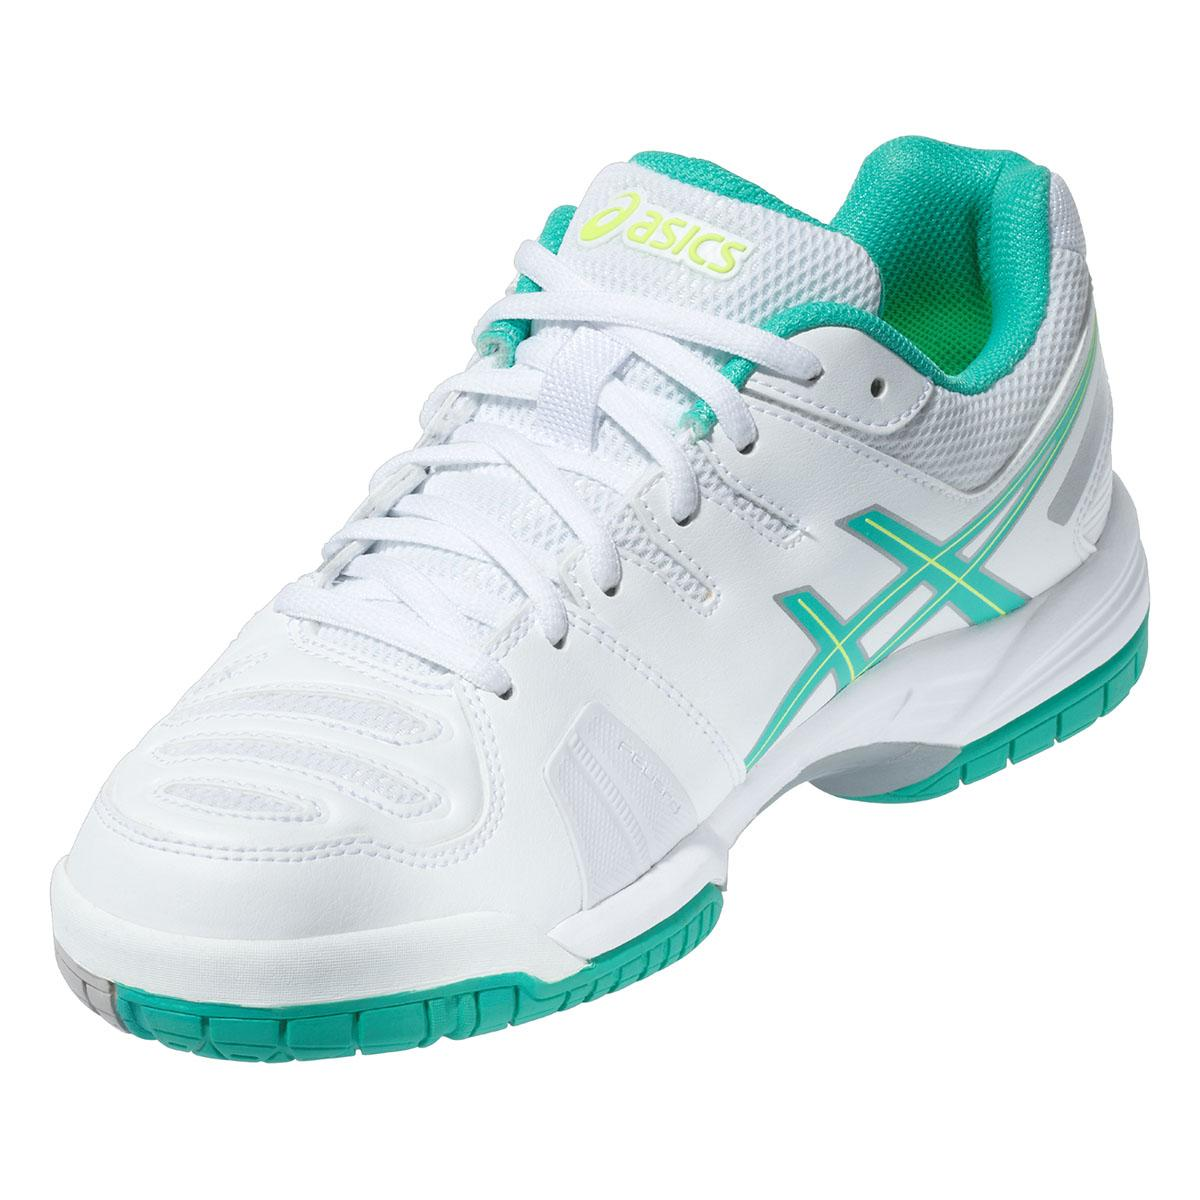 Asics Dame Gel-Game 5 Oc Tennis Sko - Whitemint-4083